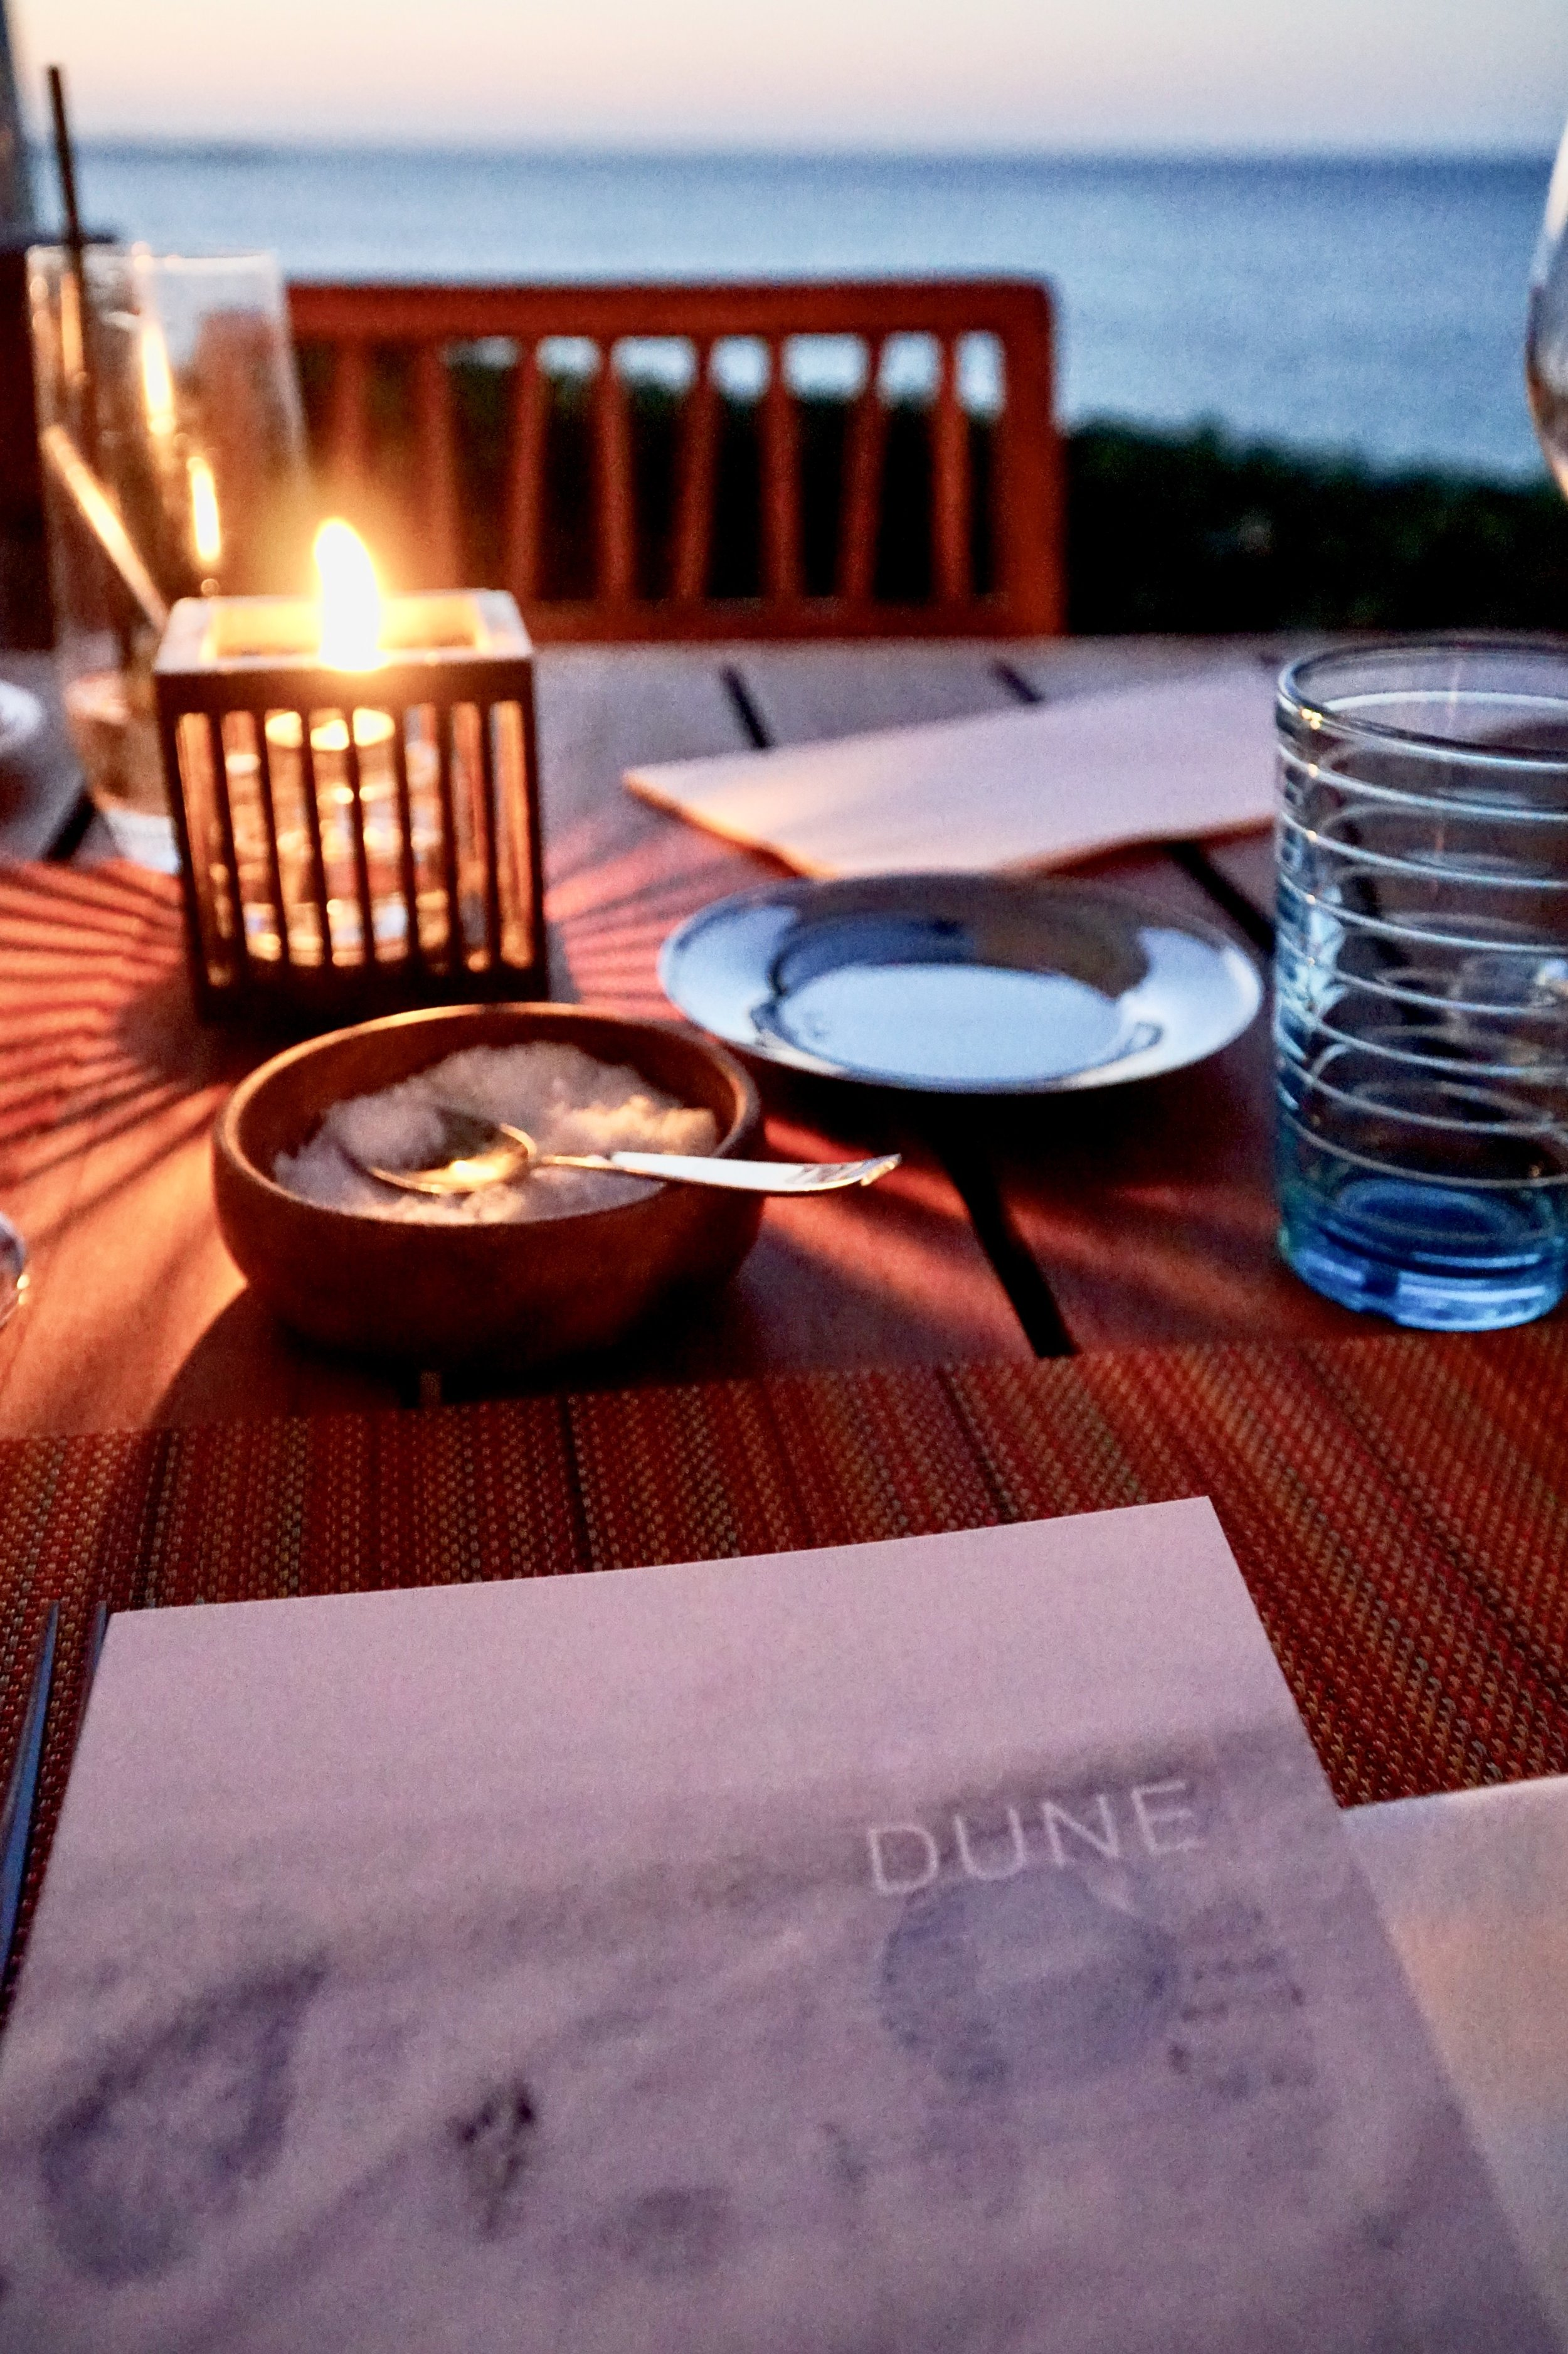 Seaside dinner at Dune at the One&Only Ocean Club in the Bahamas taken by Julia Friedman